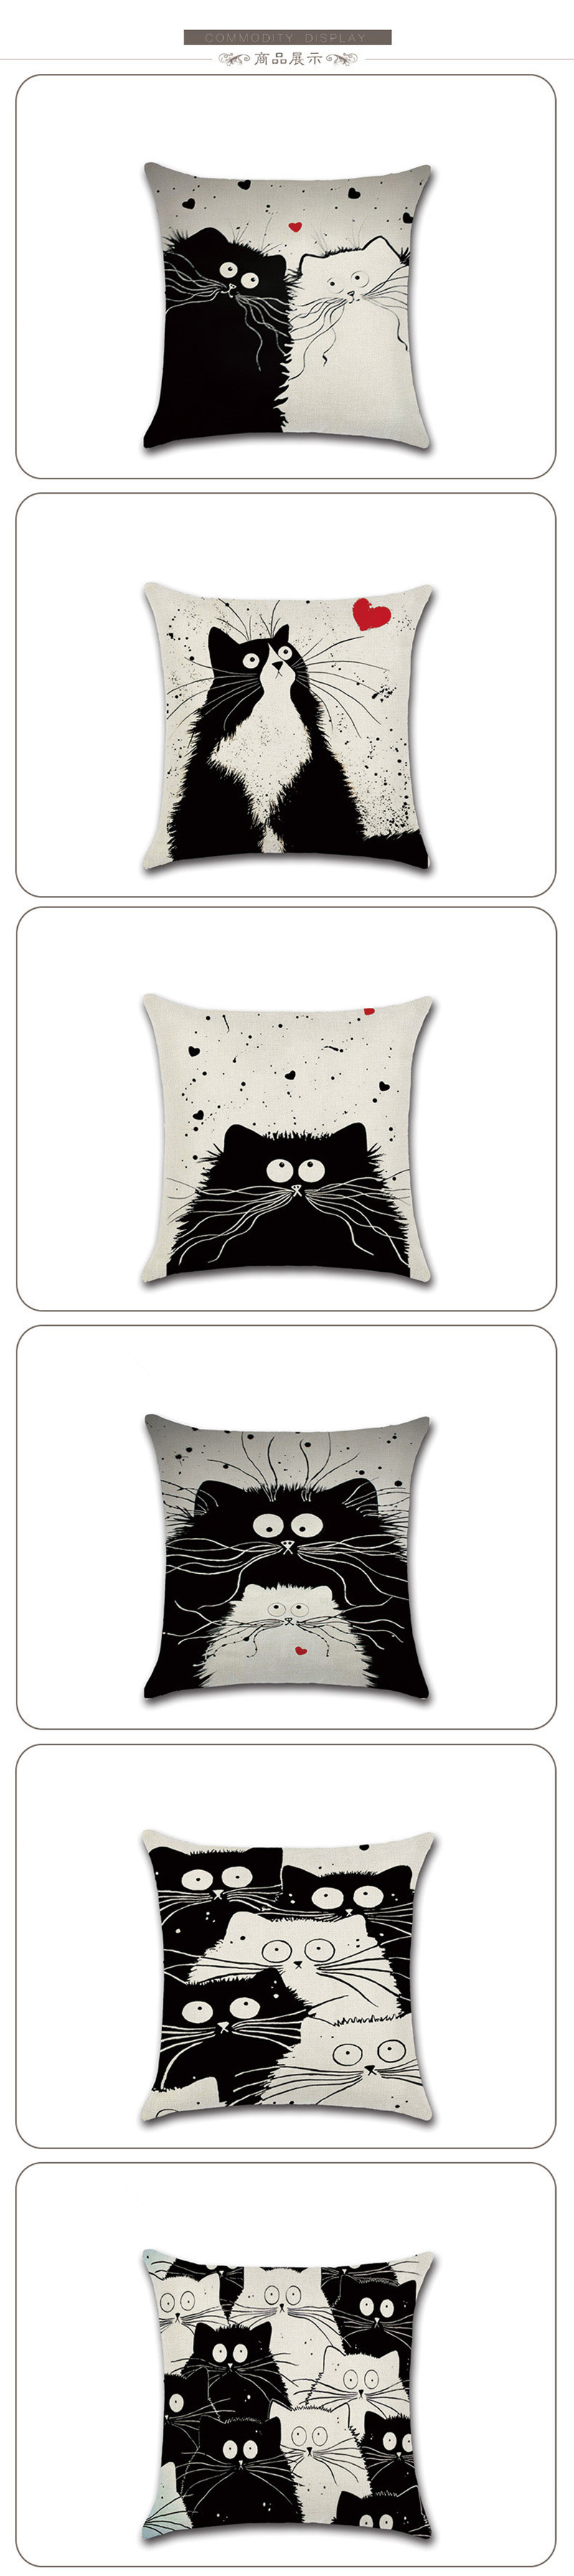 Cute Black White Cat Decorative Pillowcases